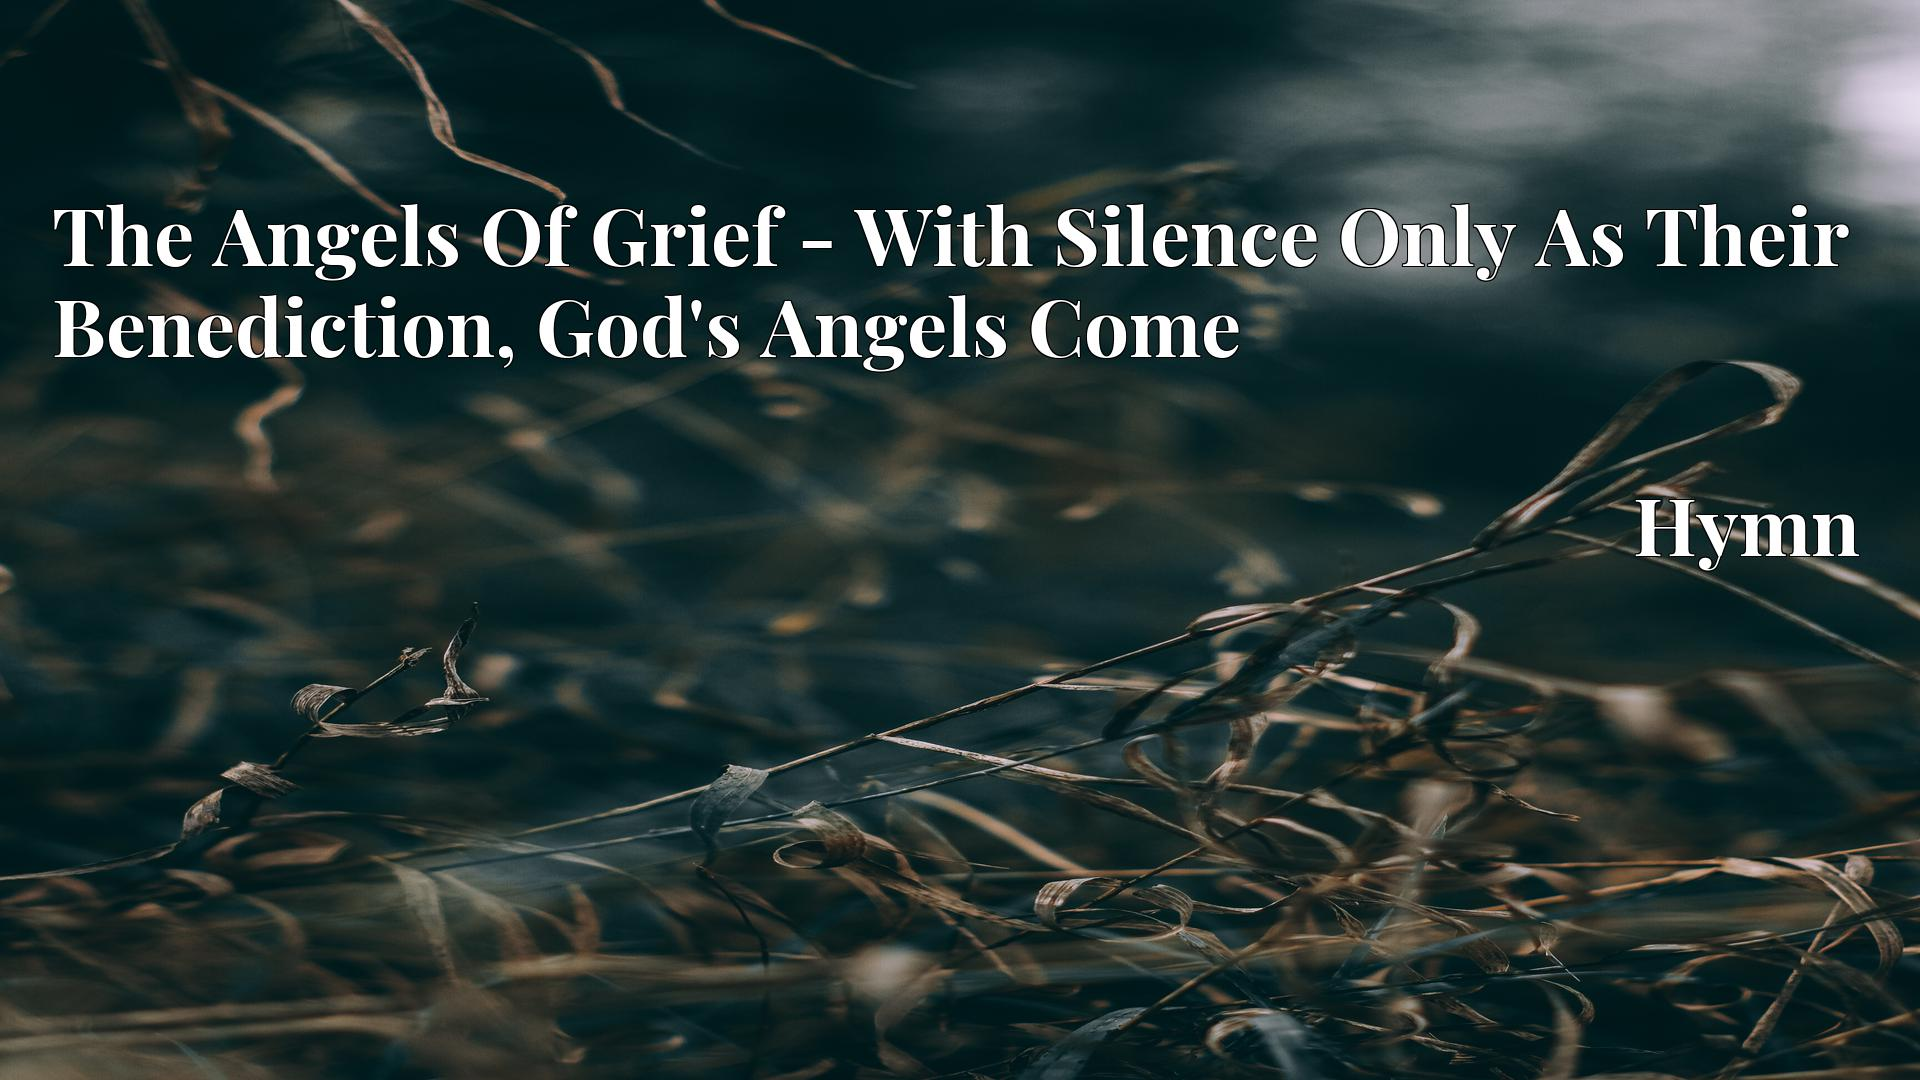 The Angels Of Grief - With Silence Only As Their Benediction, God's Angels Come - Hymn